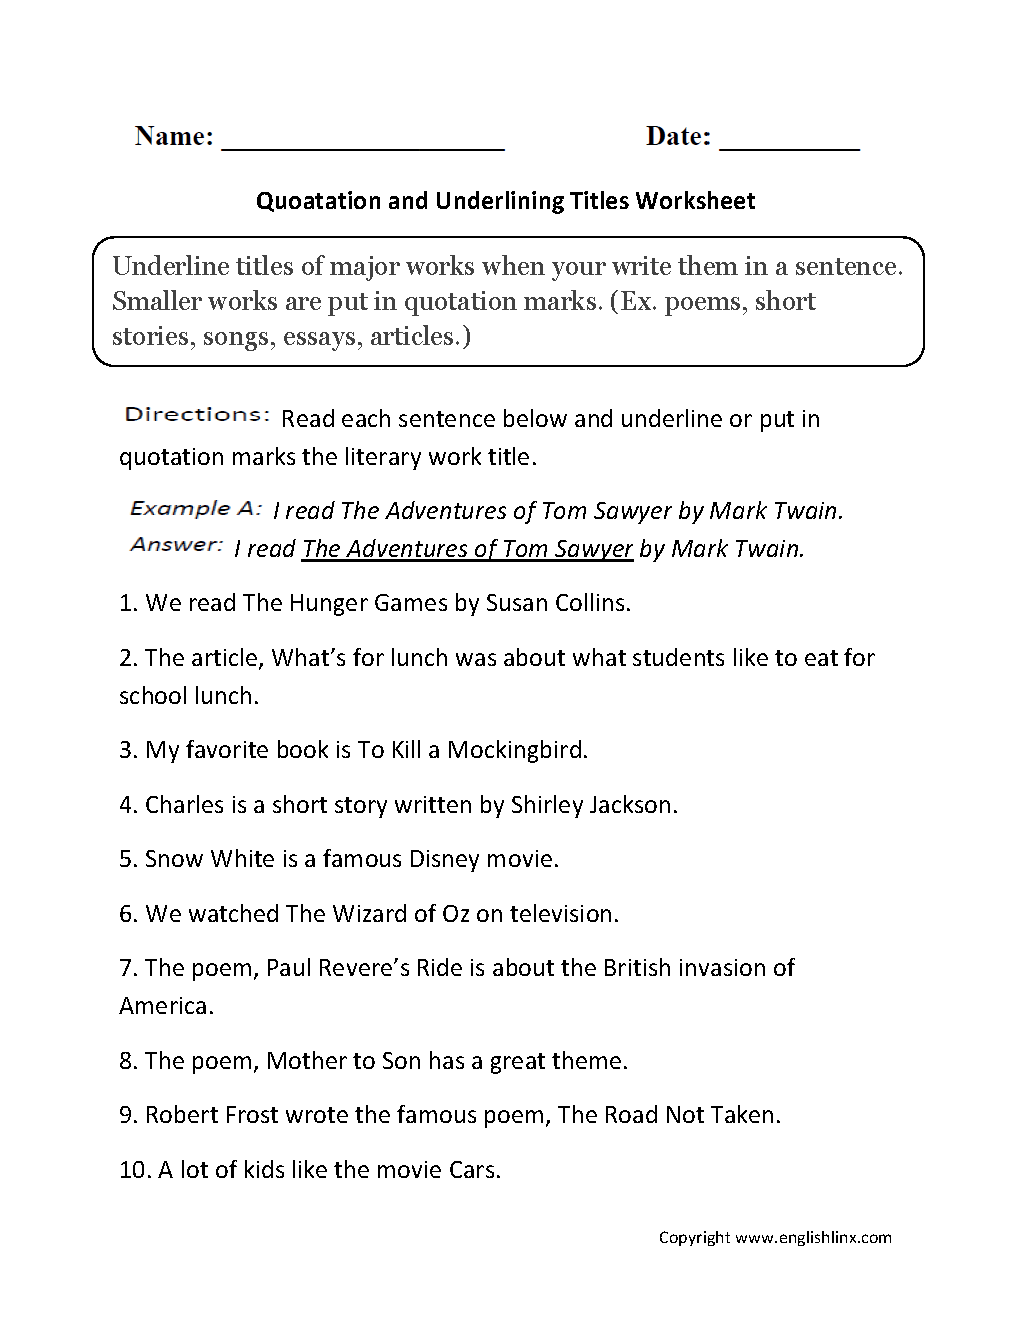 Free Worksheet Grammar Worksheets For 5th Grade grammar mechanics worksheets italics and underlining worksheets